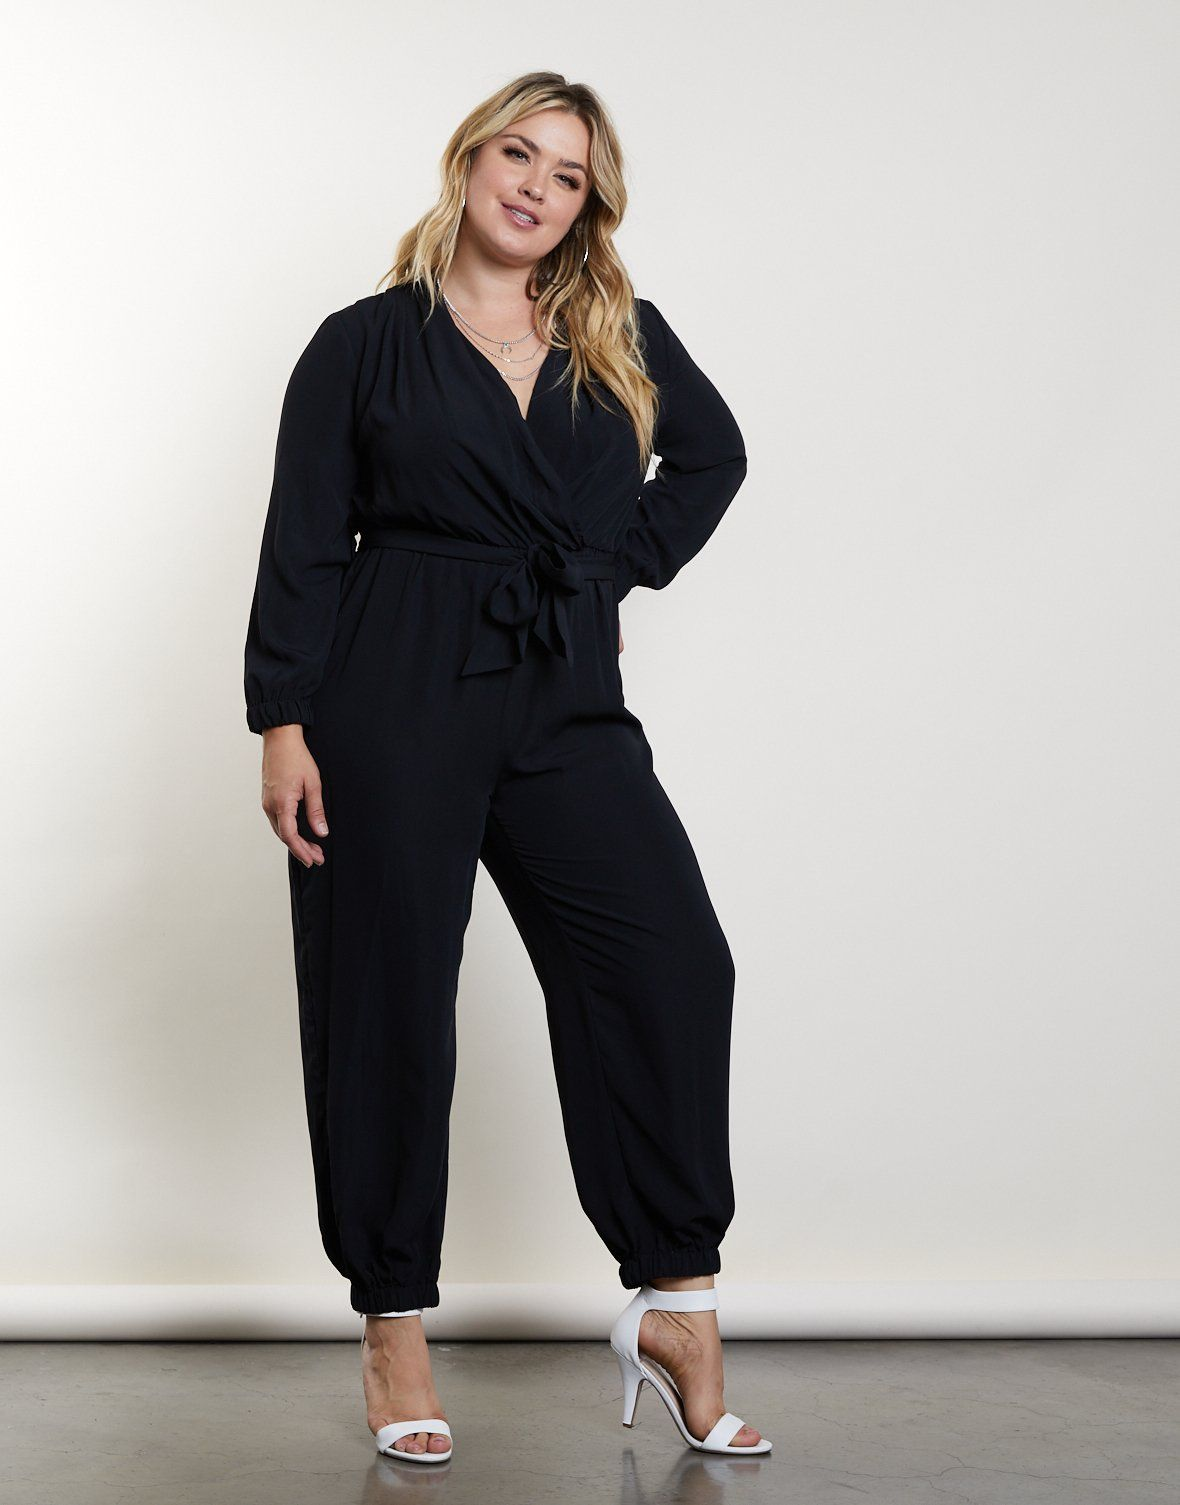 Plus Size In The Dark Jumpsuit Newontheave Pinterest Llenitas